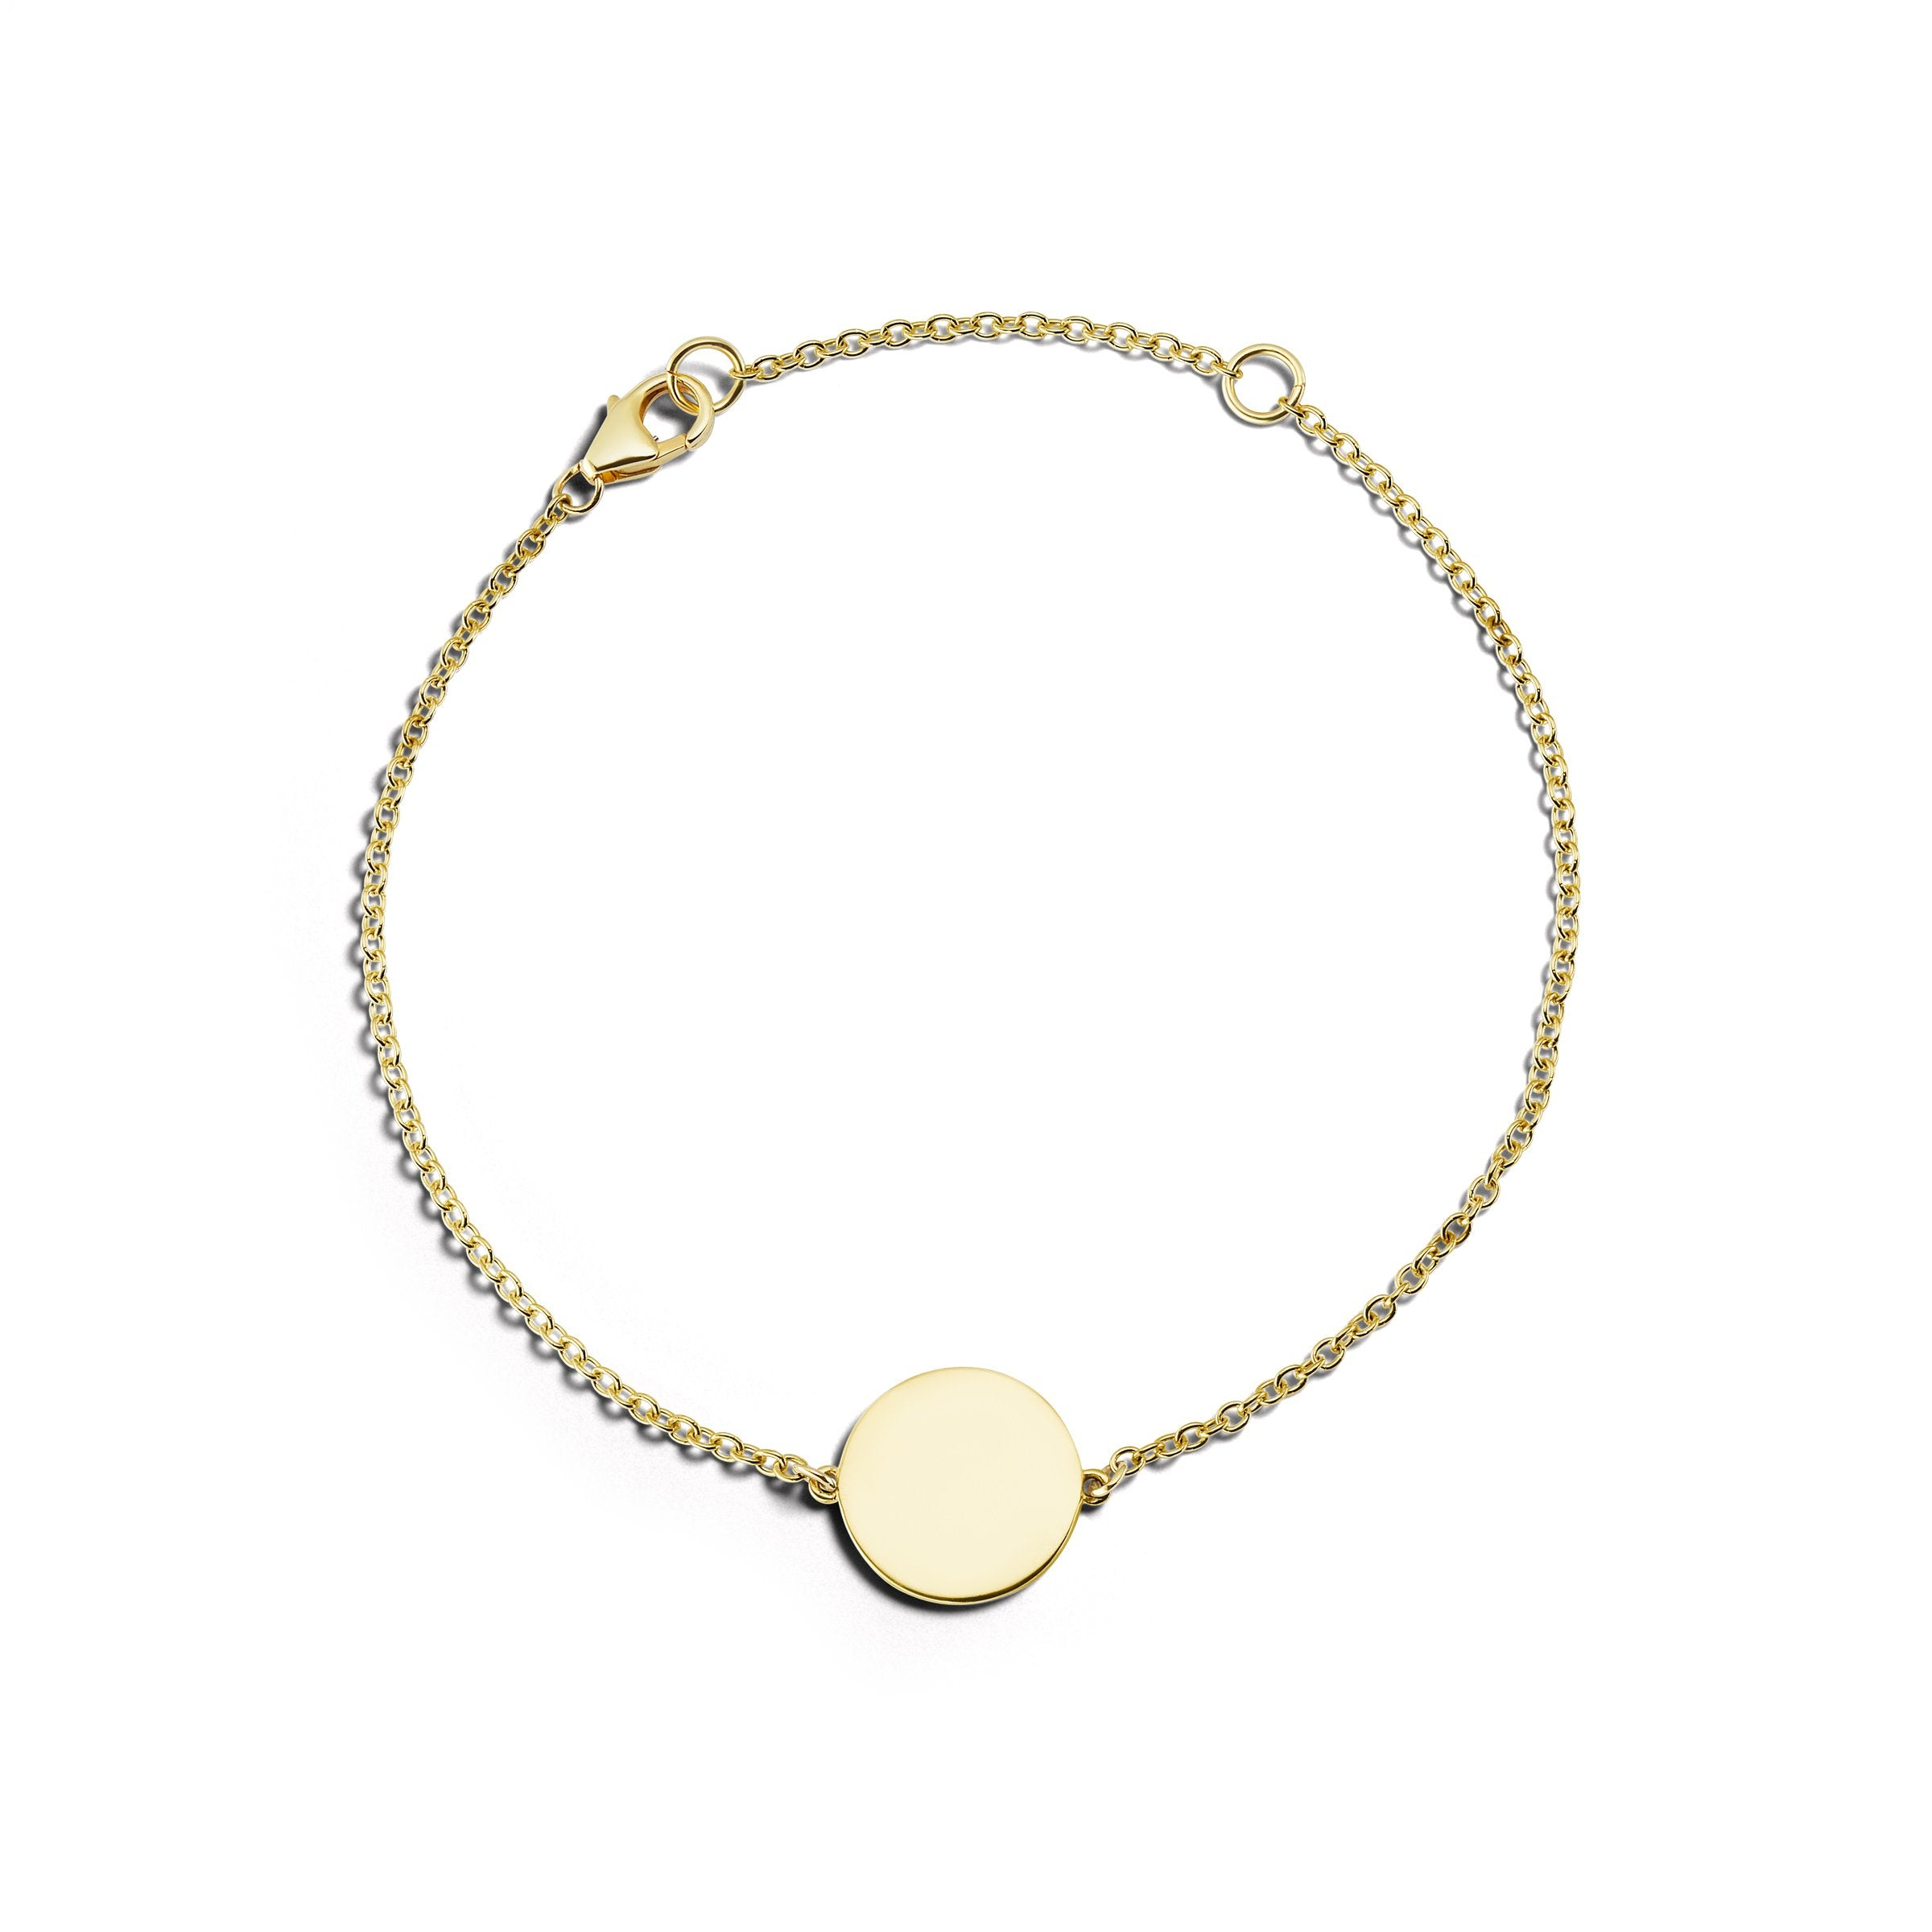 The Gold Signature Bracelet